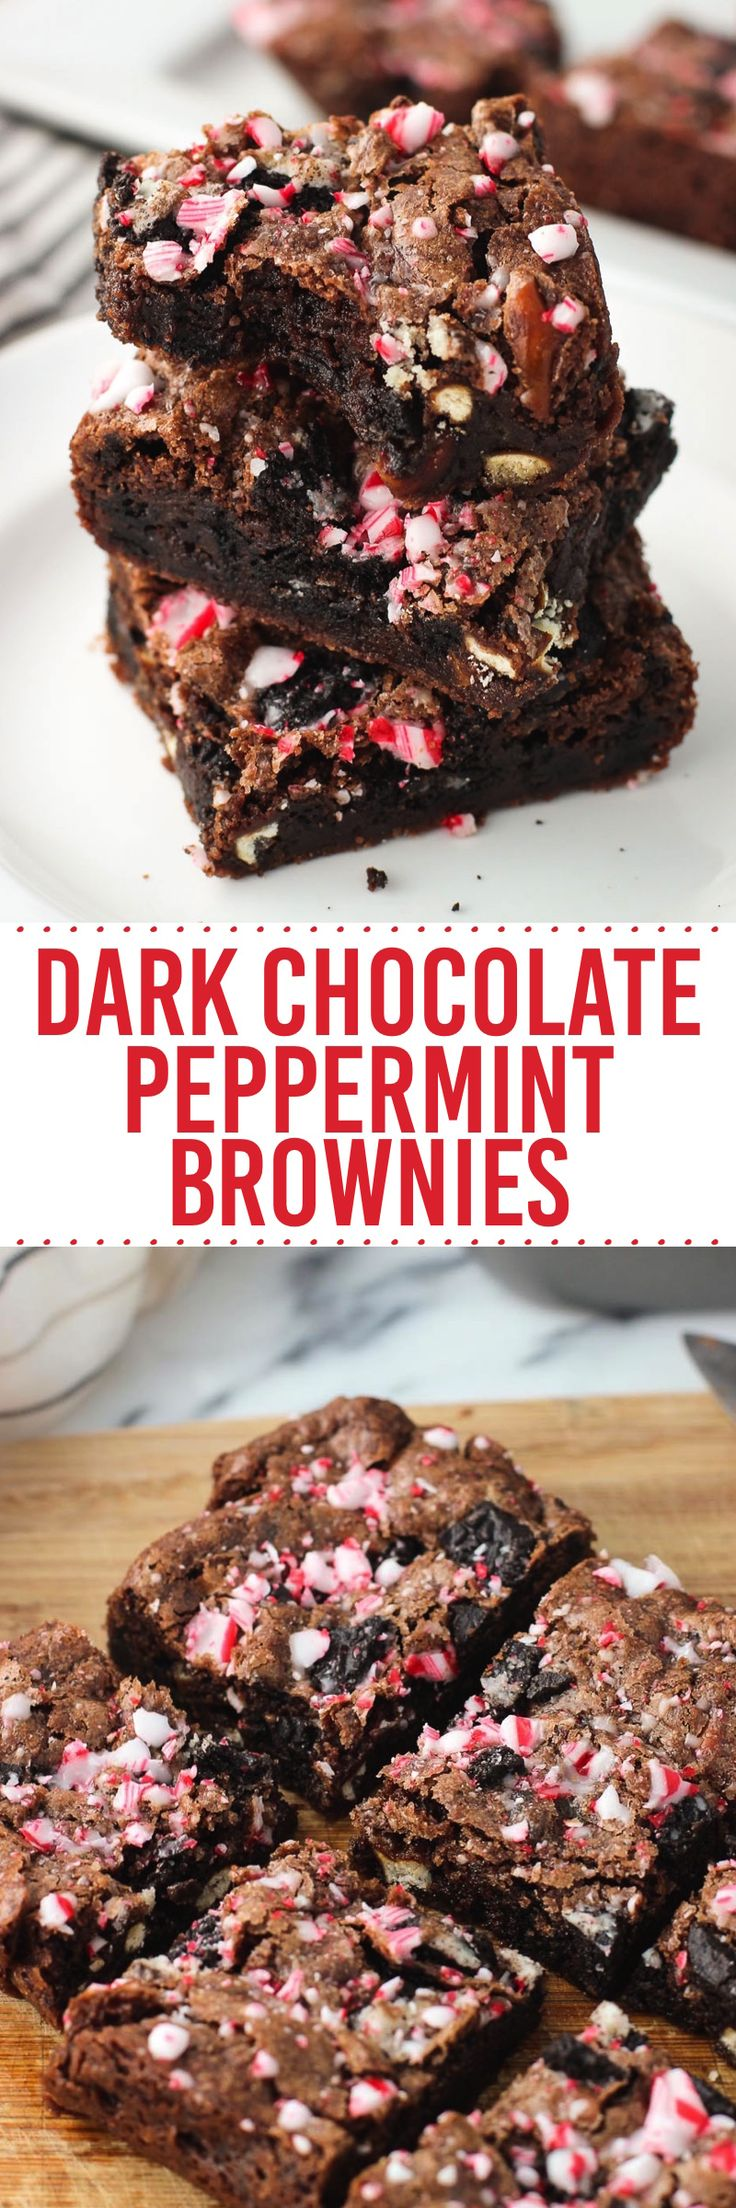 "Dark chocolate peppermint brownies loaded with Oreo pieces, pretzels, and crushed candy canes! This recipe is made in a 9""x5"" loaf pan for a smaller yield."